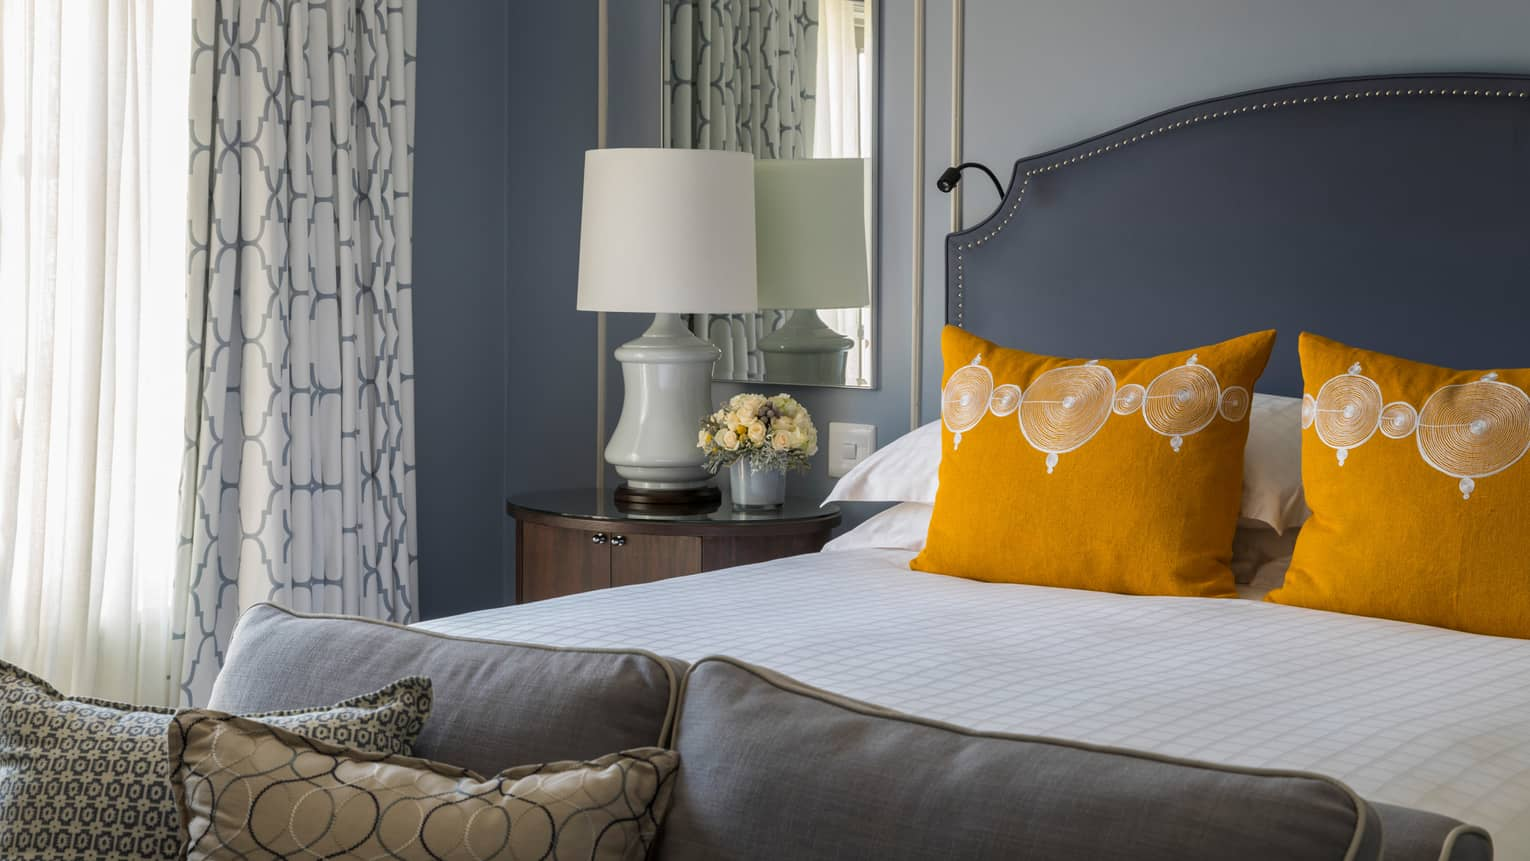 One Bedroom Suite bed with bright yellow accent pillows, white lamp on nightstand in front of mirror